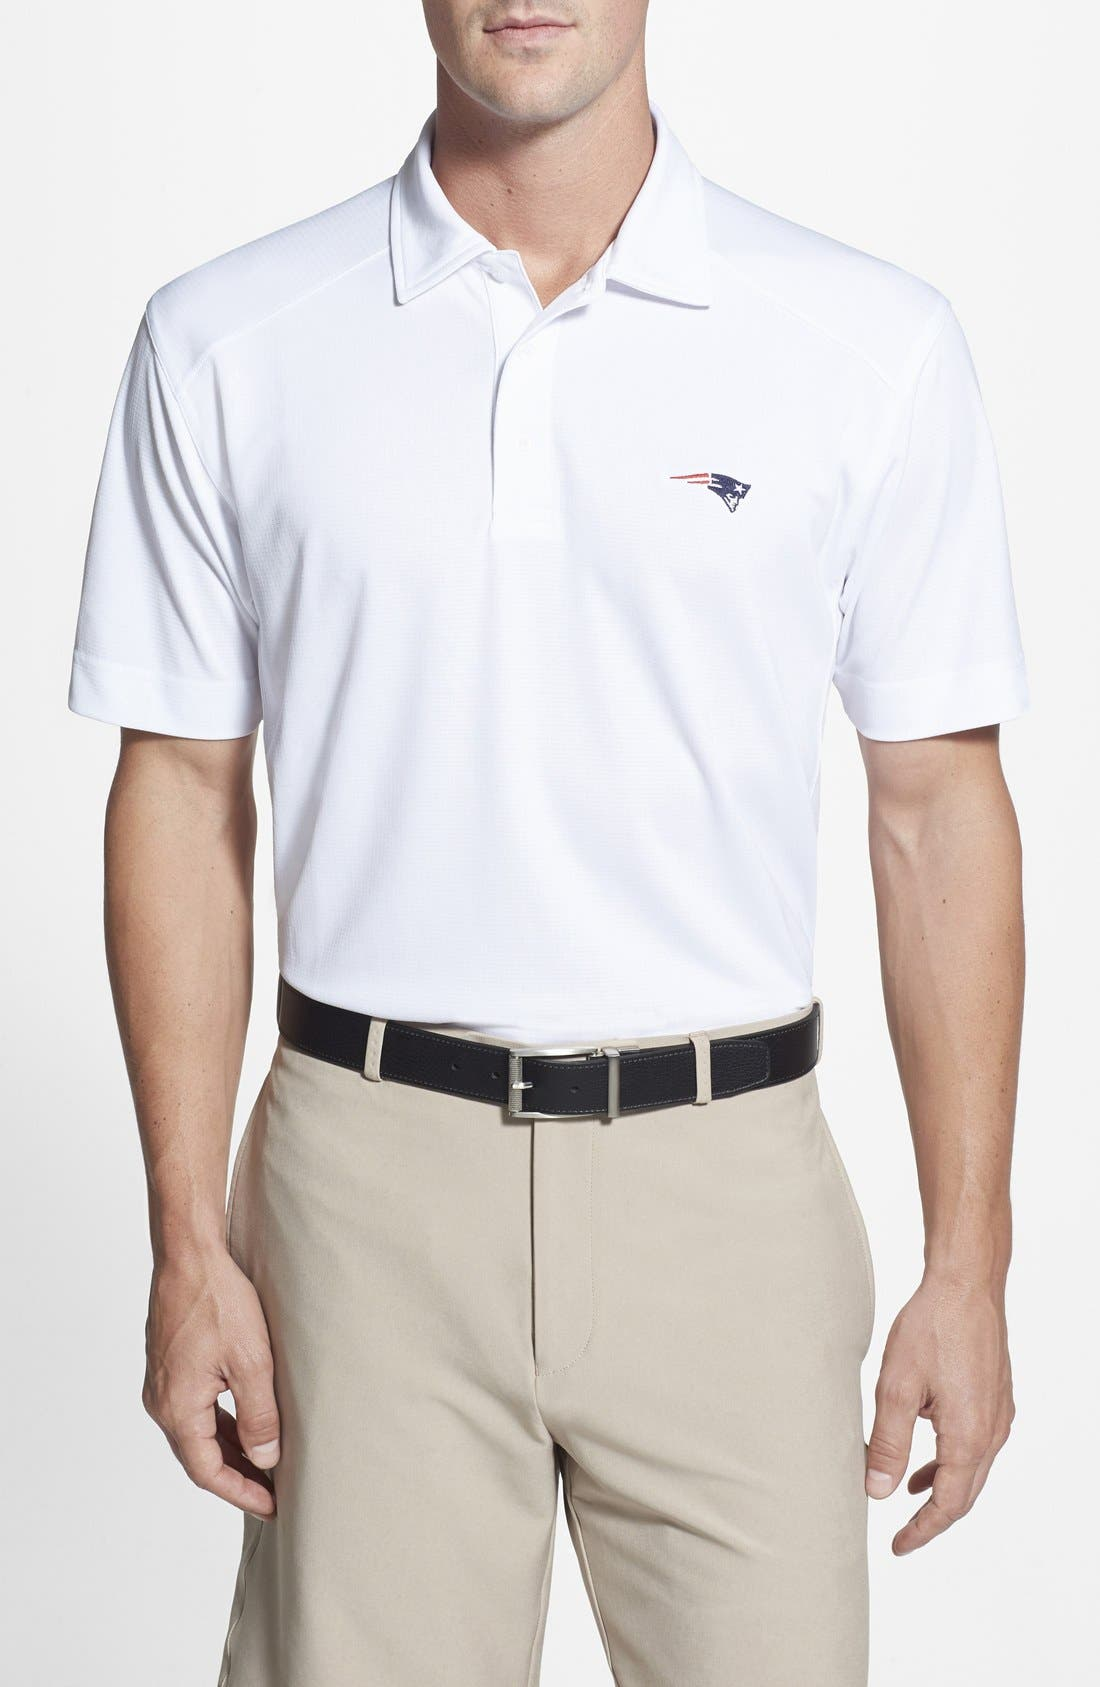 Cutter & Buck New England Patriots - Genre DryTec Moisture Wicking Polo